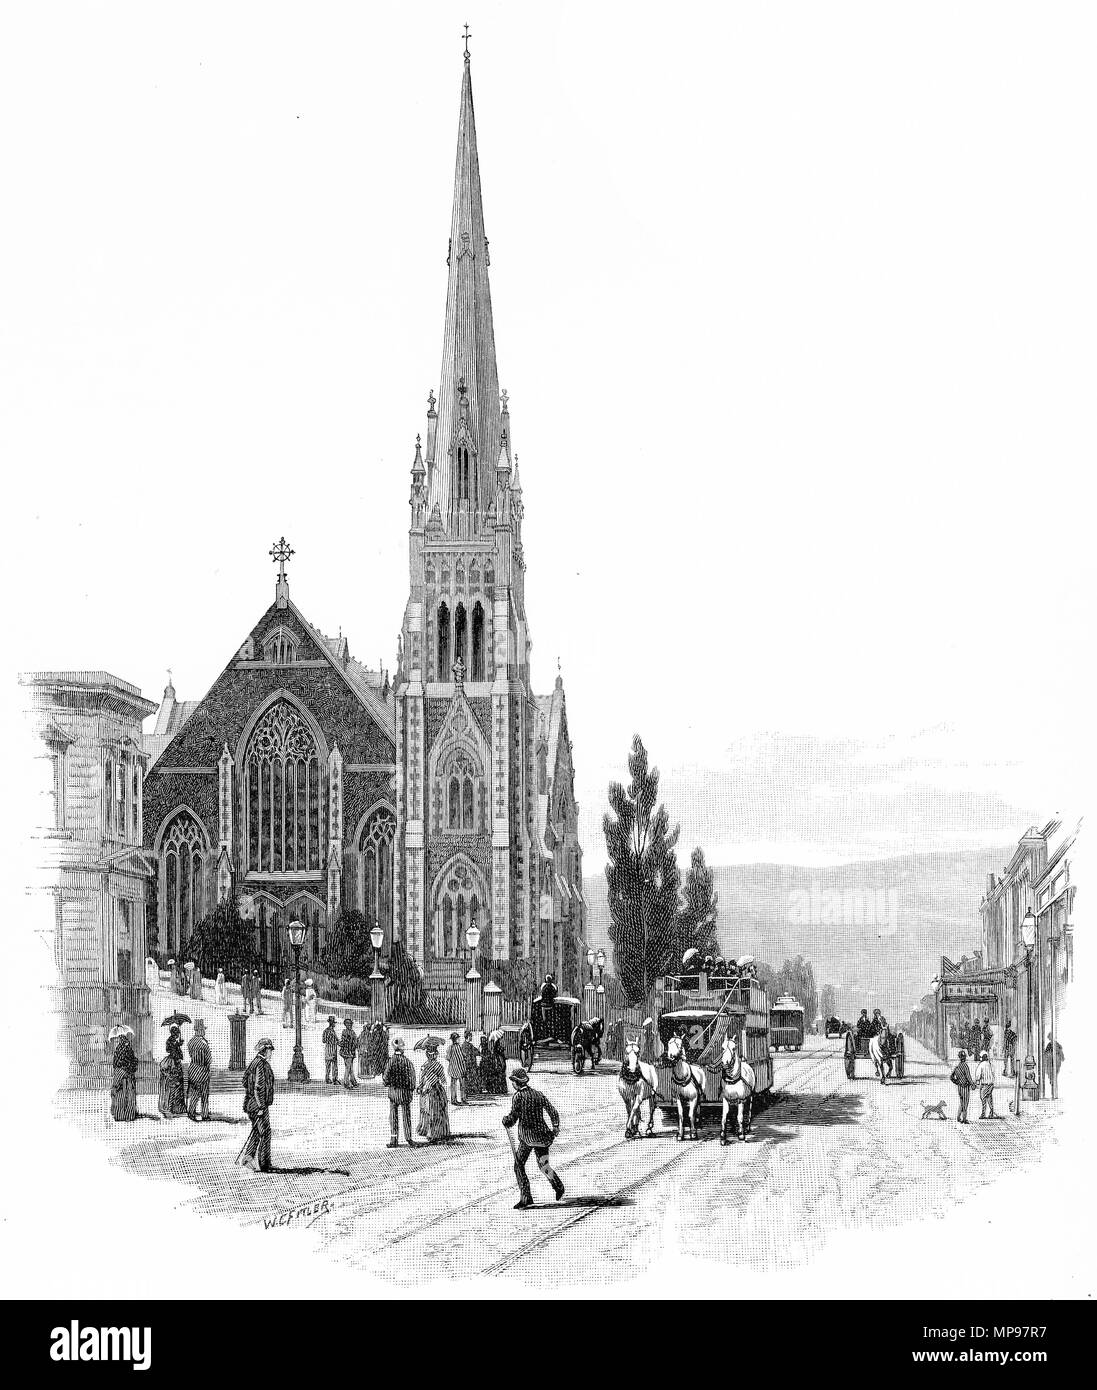 Engraving of the Knox Presbyterian Church in the city of Dunedin circa 1880, New Zealand. From the Picturesque Atlas of Australasia Vol 3, 1886 - Stock Image